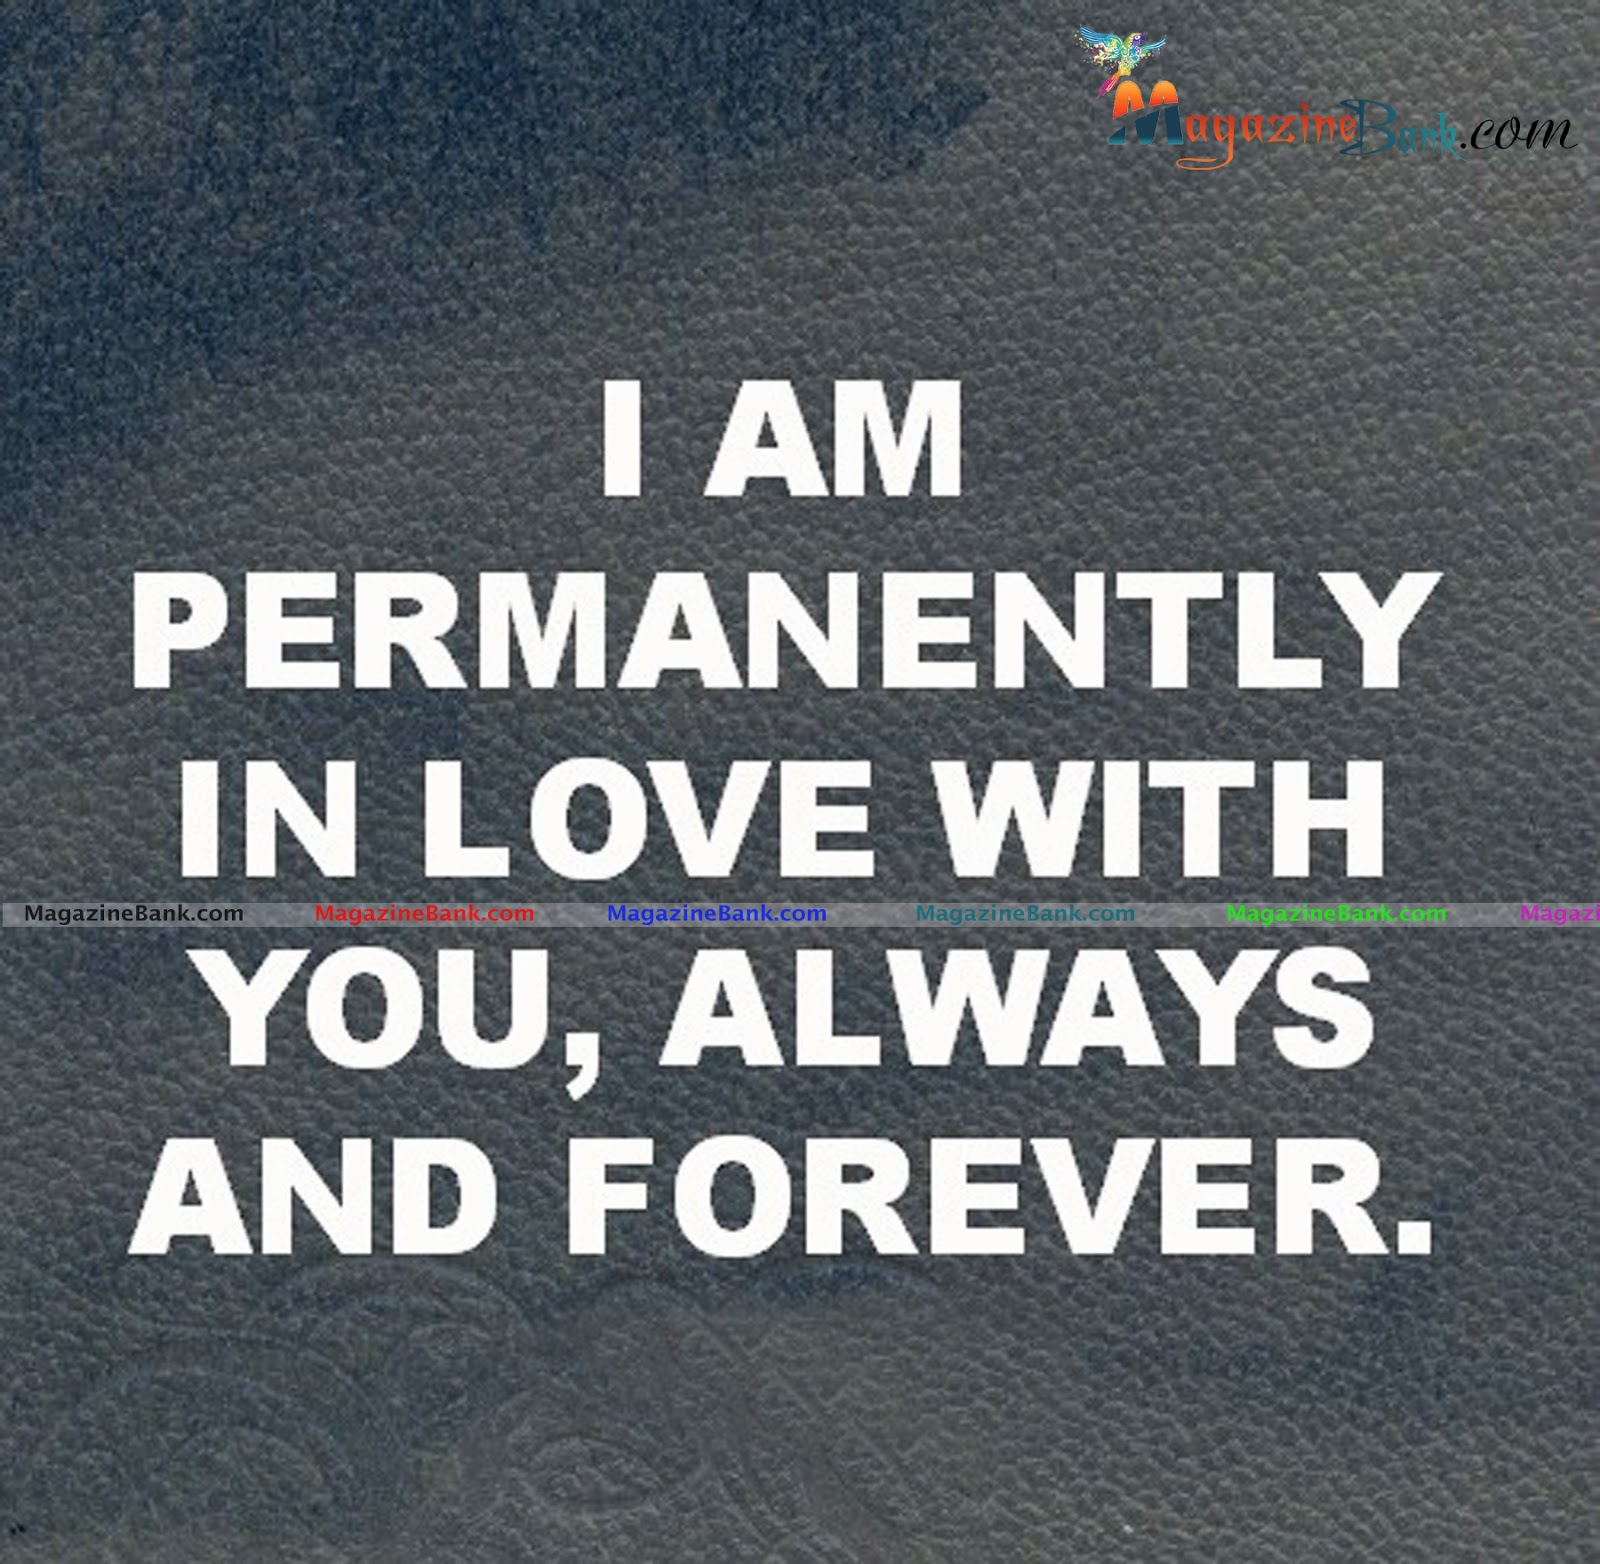 In Love Quotes: Powerful Love Quotes For Him. QuotesGram